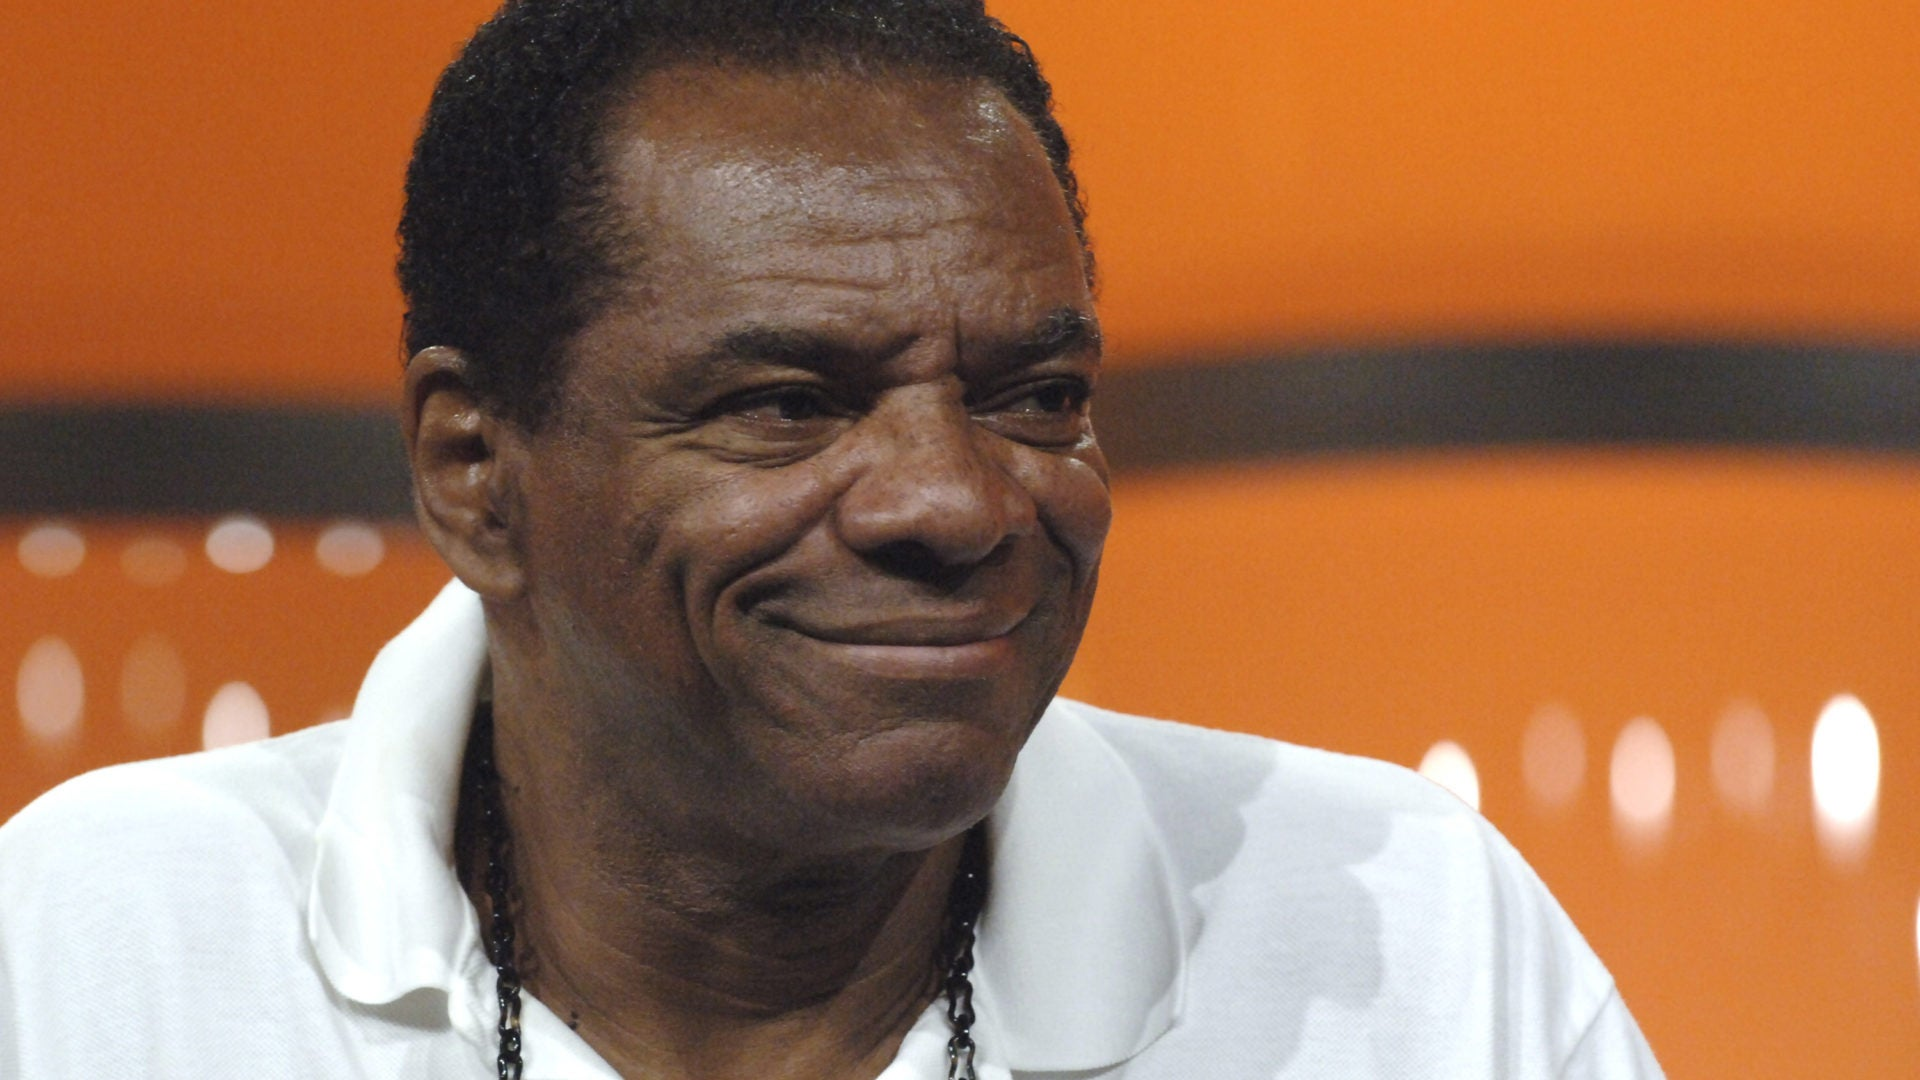 John Witherspoon Laid To Rest In Star-Studded Ceremony